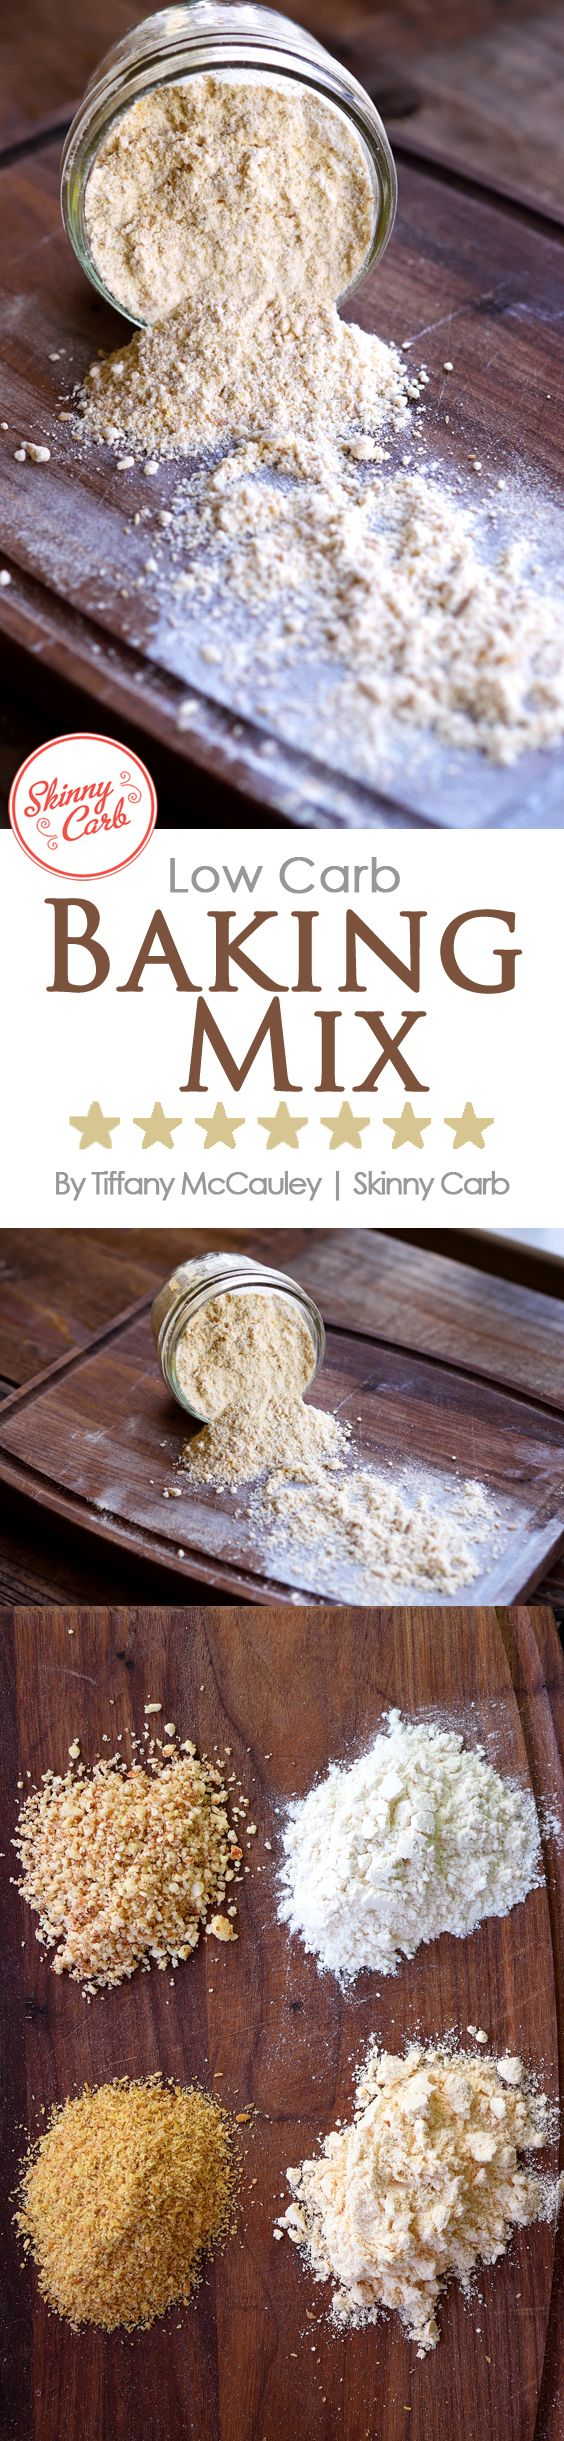 This wonderful, low carb baking mix is perfect for breads, rolls and even waffles! Mix up a batch to day to store in your cupboard! ~ http://www.skinnycarb.com